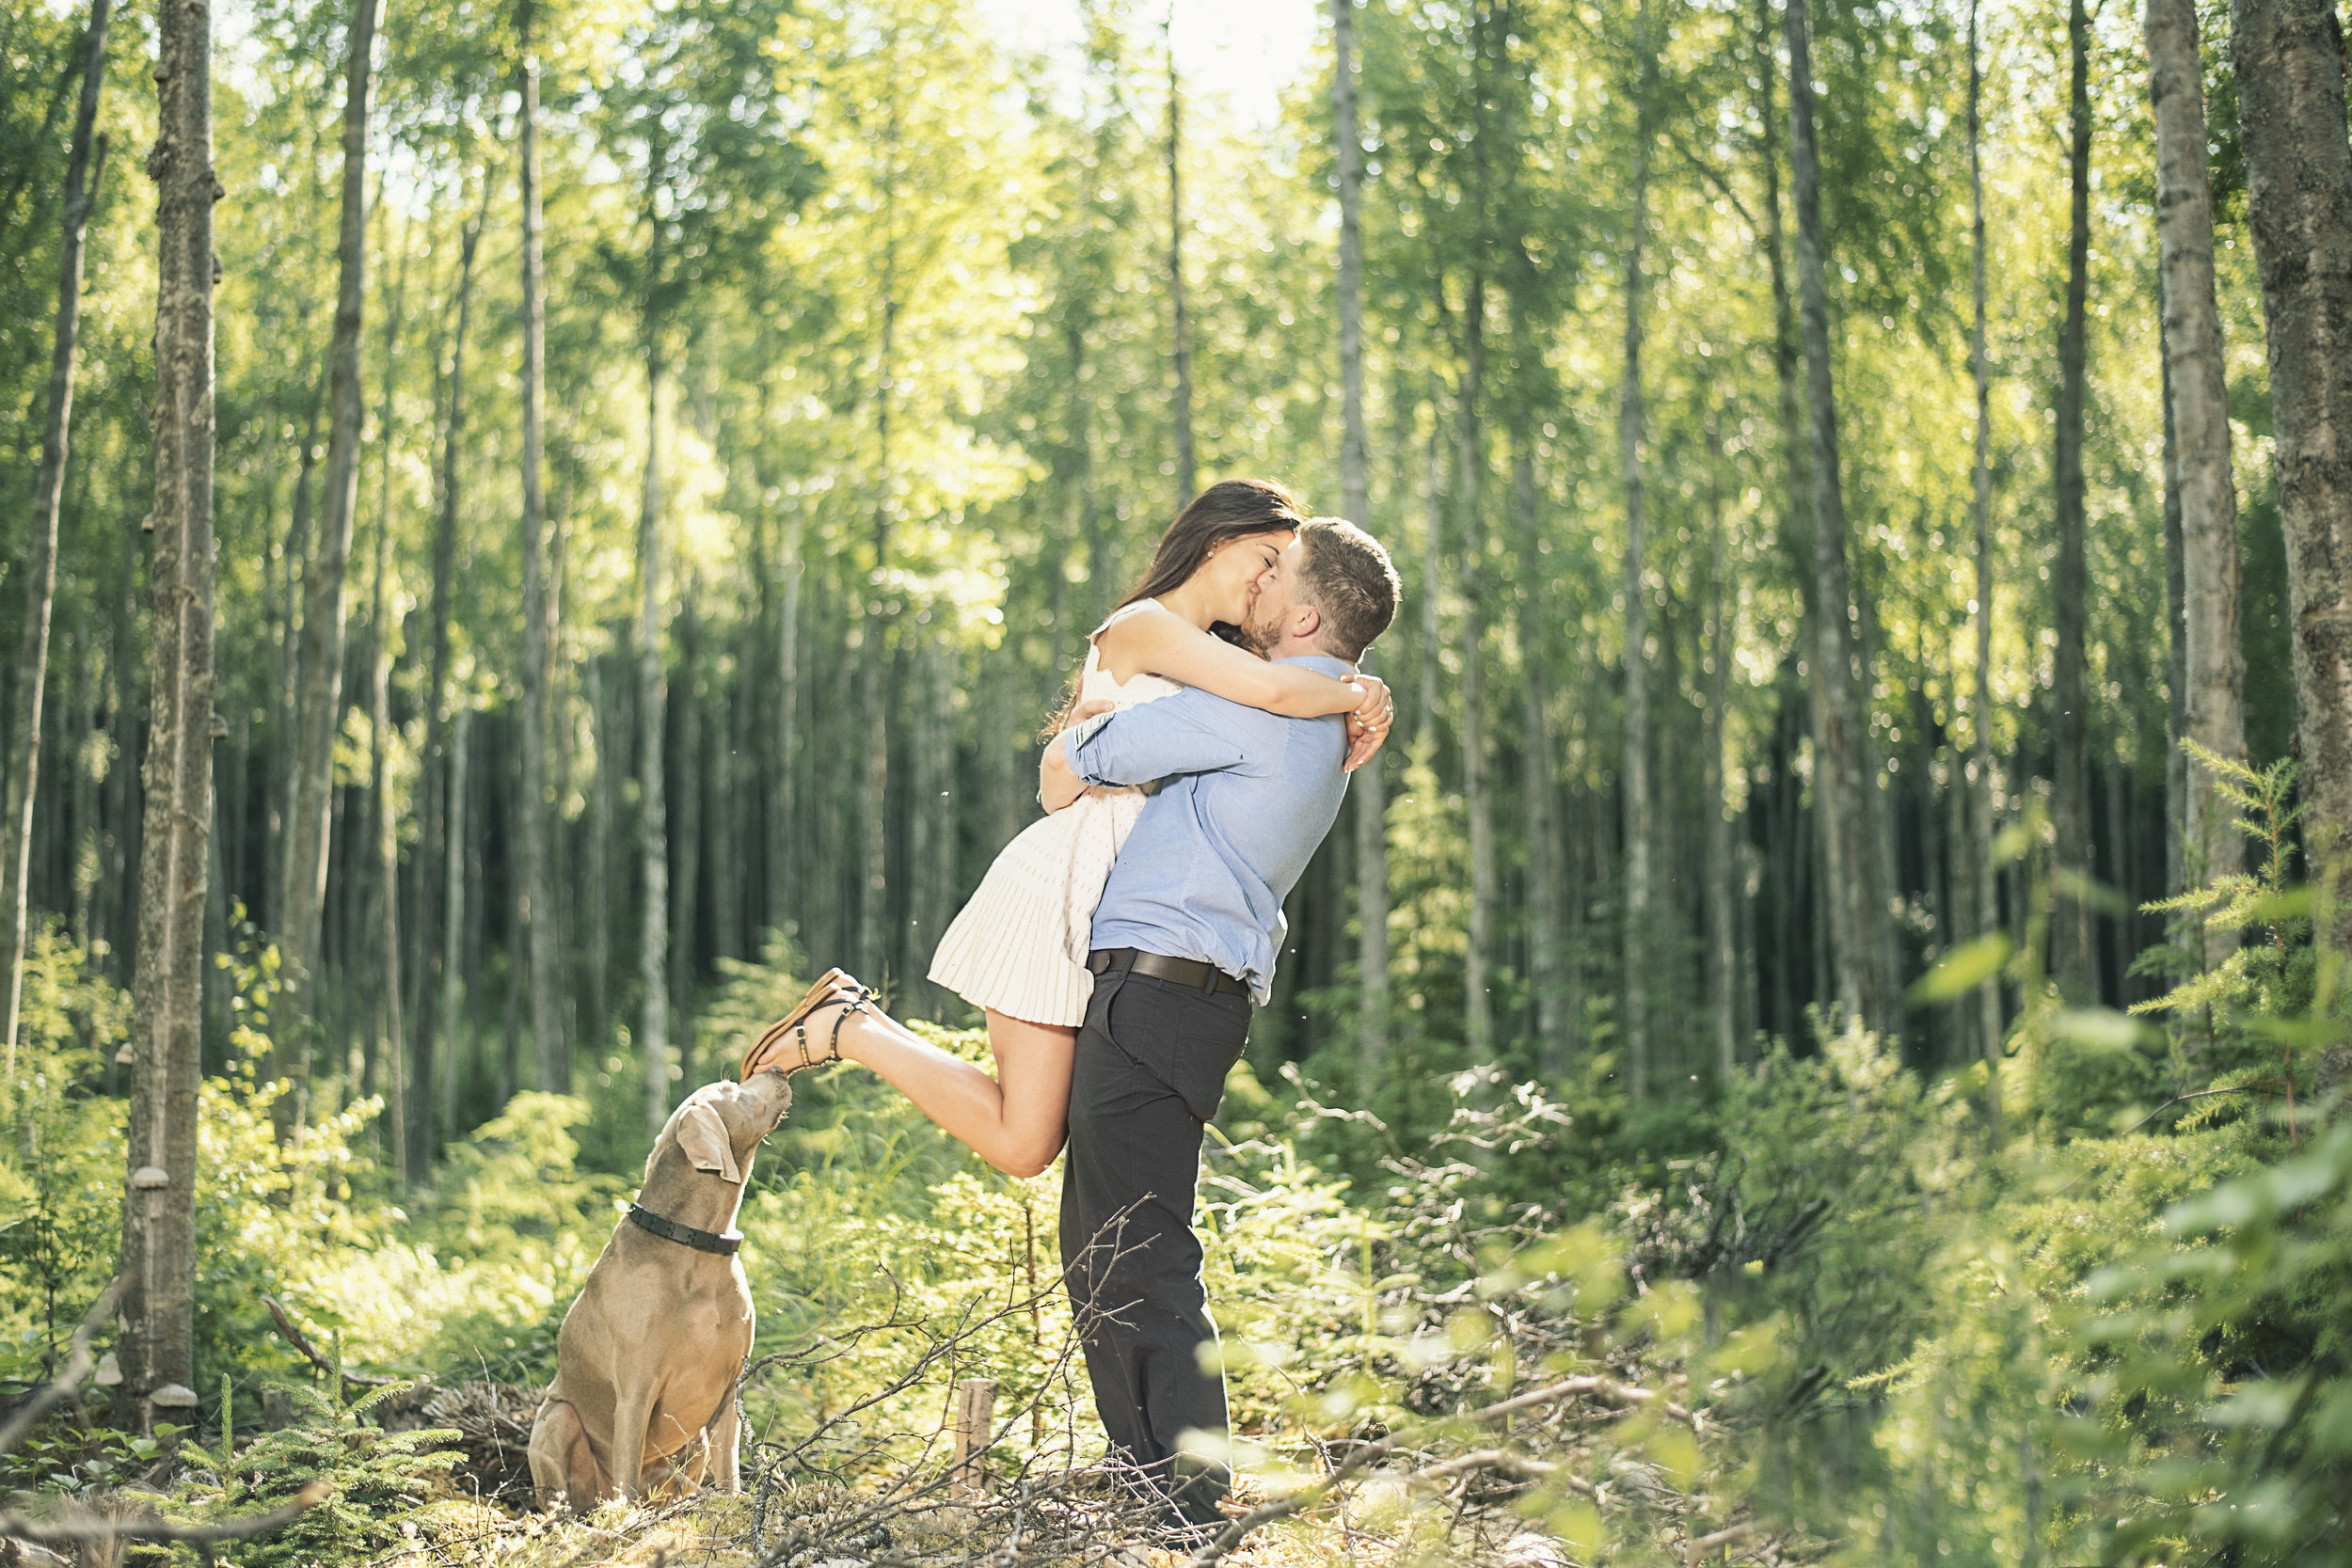 I'm SO glad a friend recommended Rawsome Photography… - My fiancé and I used her for our engagement photos and absolutely love her work! Two outfit changes, various locations and she was still very determined to get the perfect shots. If you're looking for a a photographer who is passionate about capturing the perfect picture, Oksana is the one!